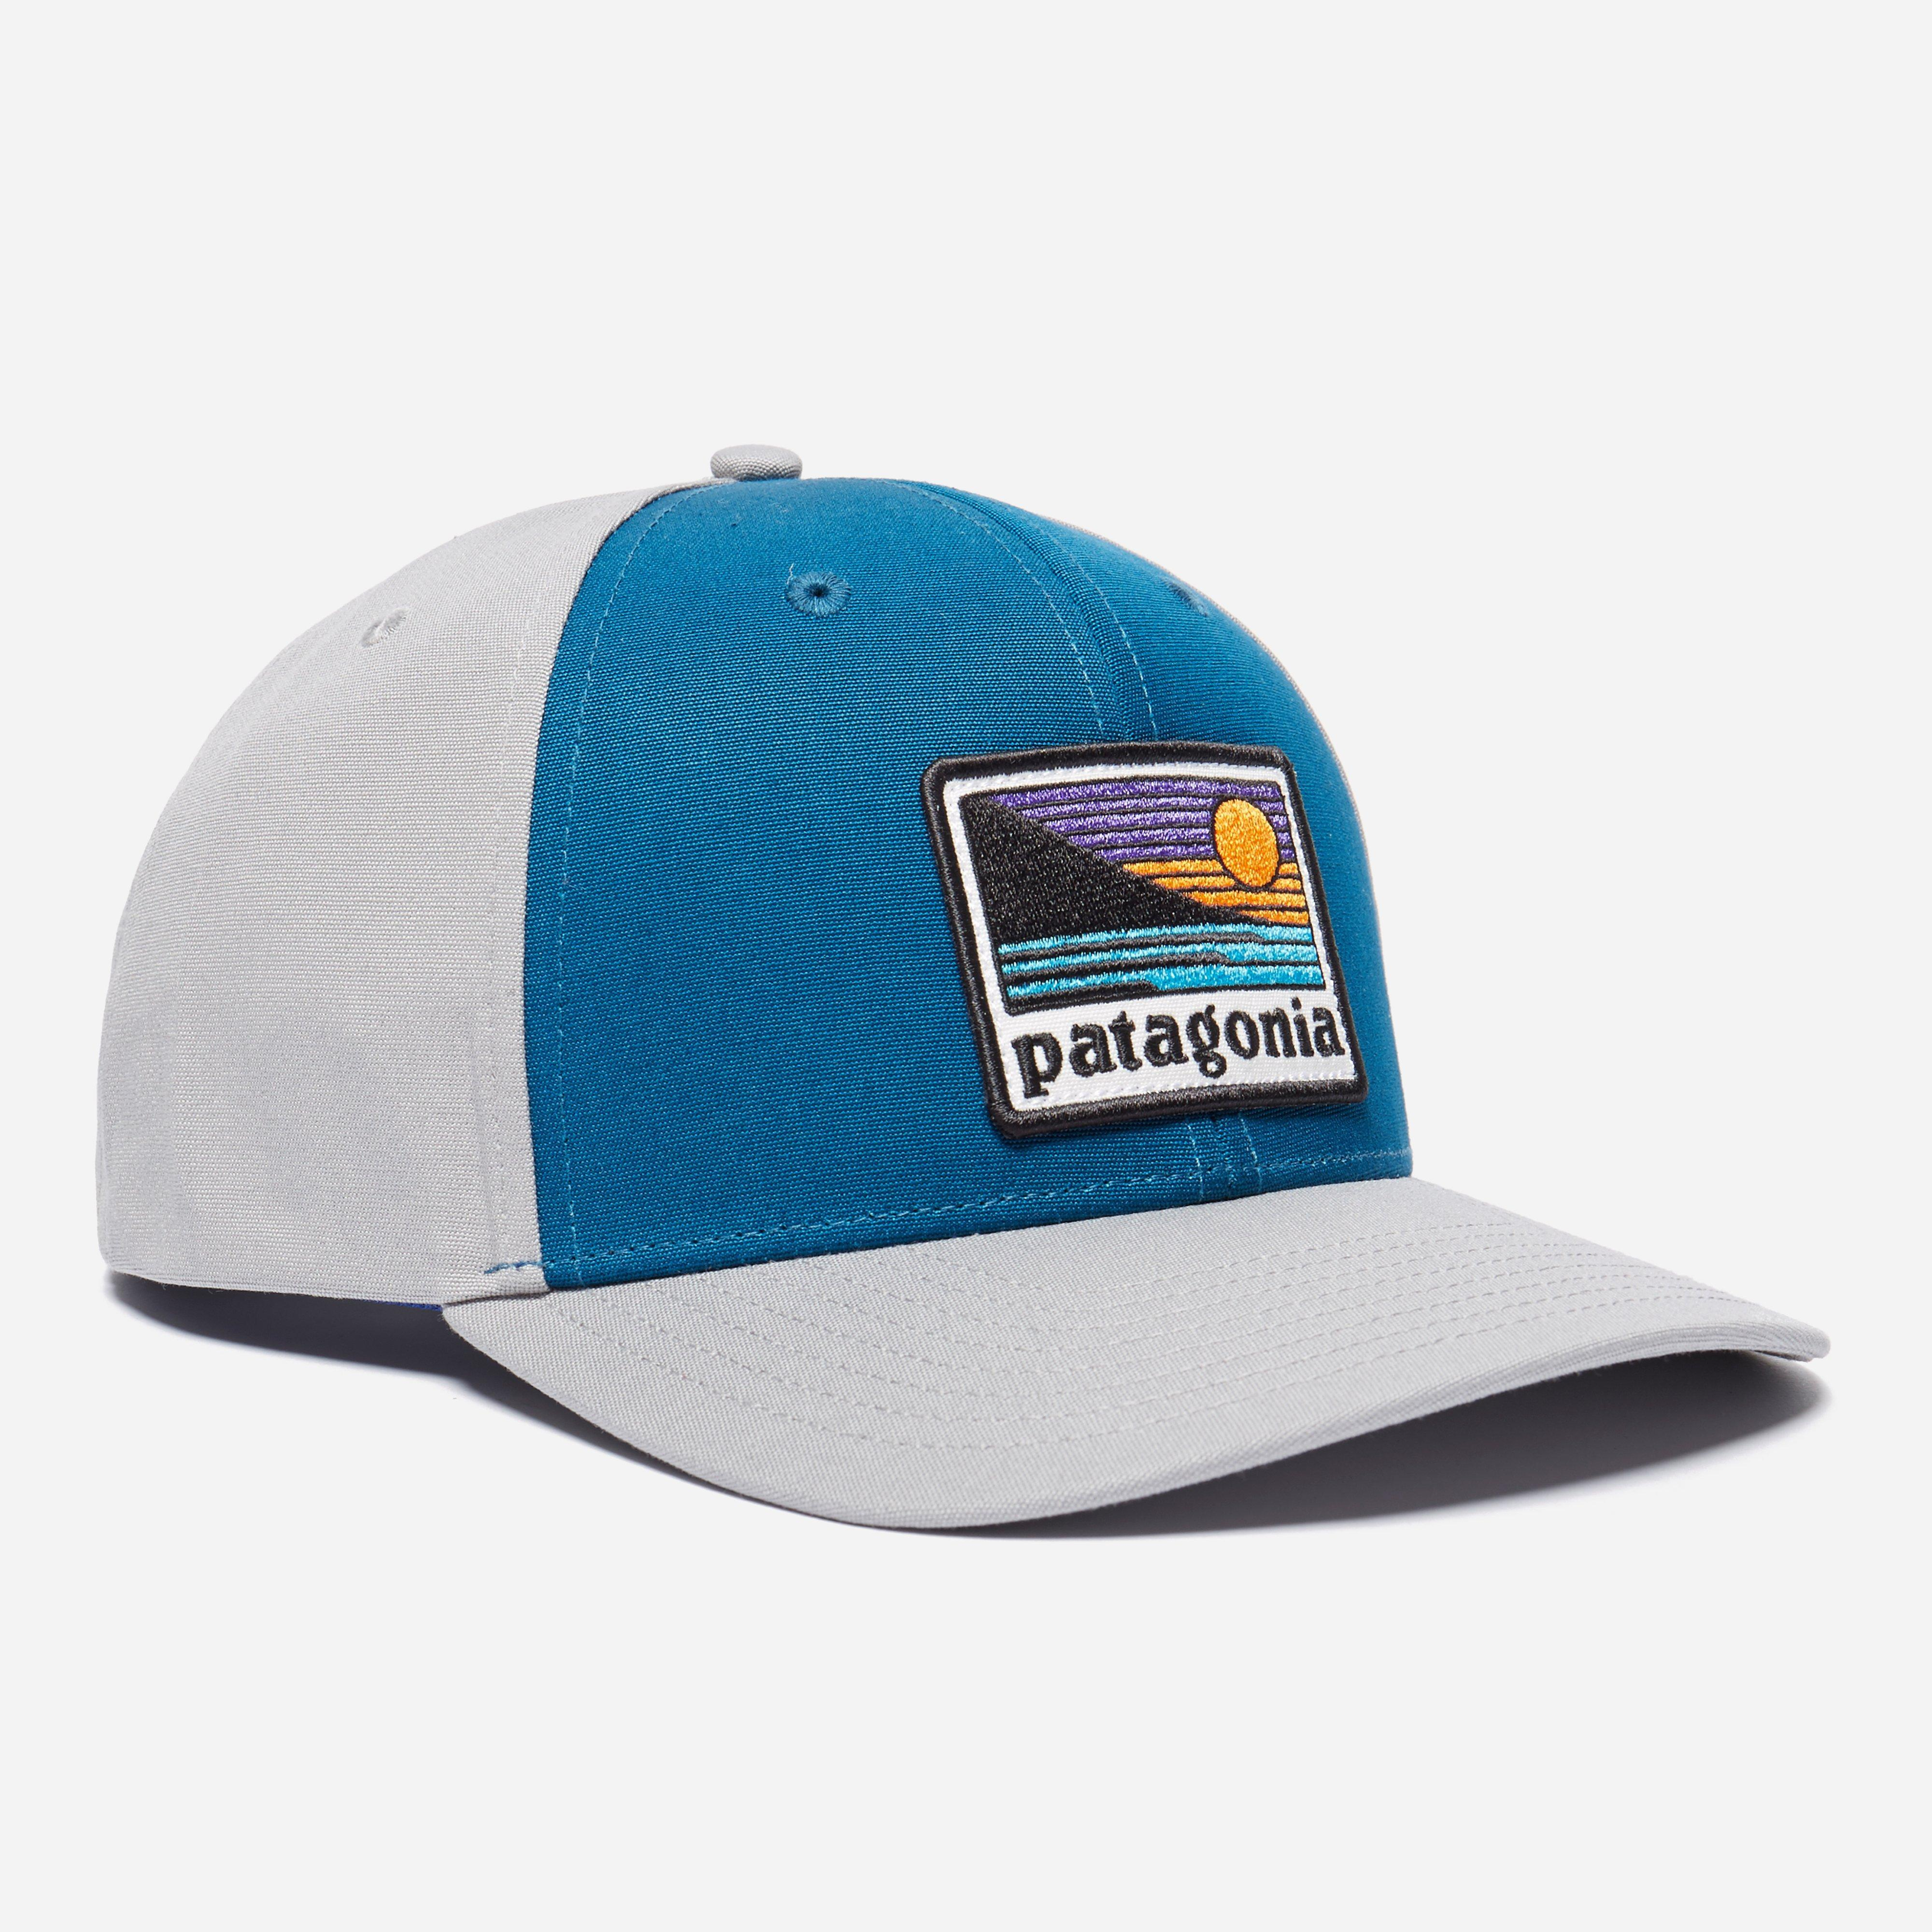 a2d6727d65 Patagonia Up   Out Roger That Hat in Blue for Men - Lyst